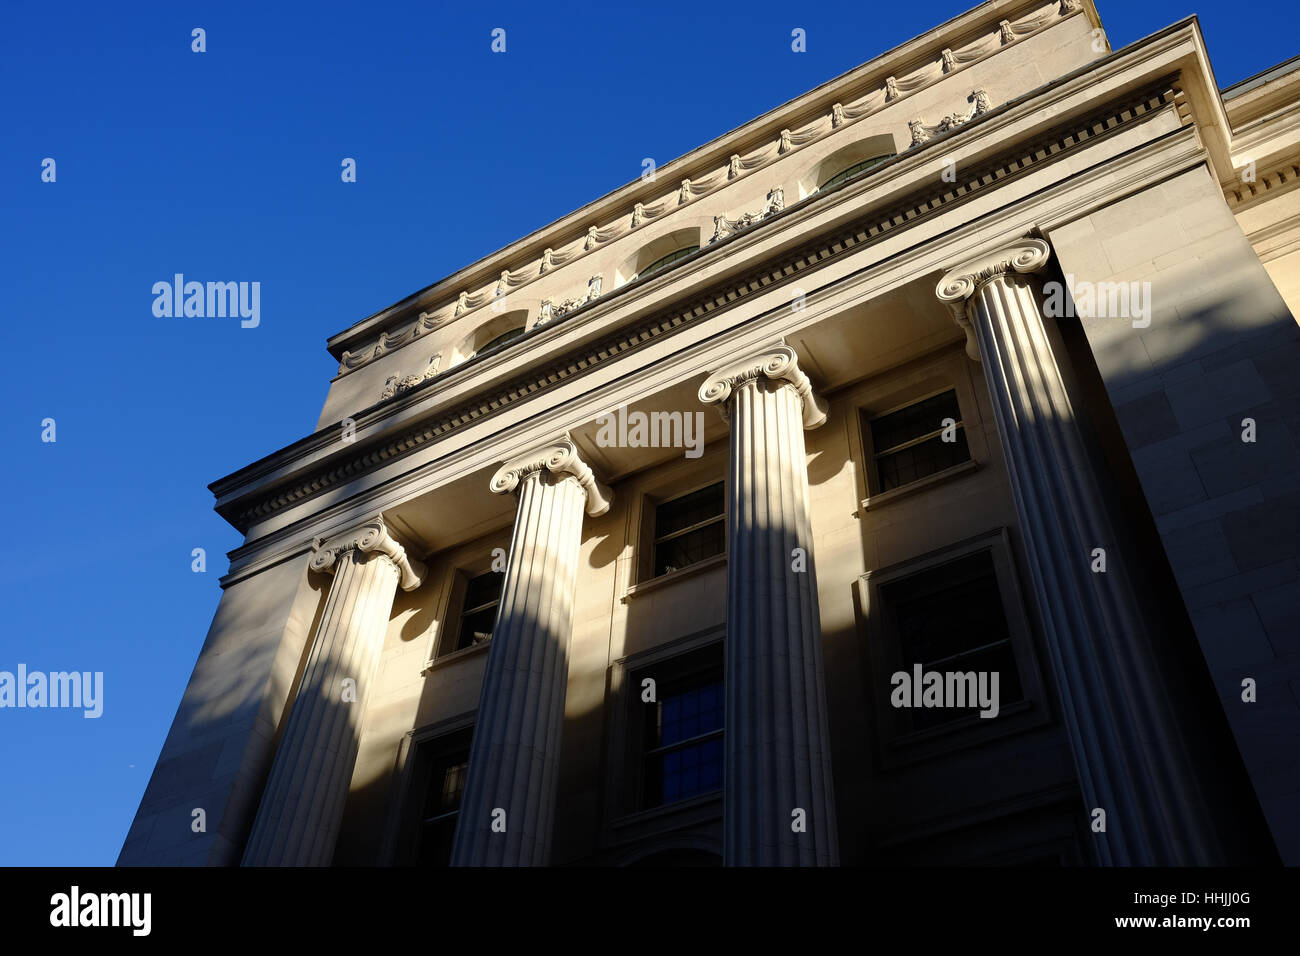 classical-style architecture - Stock Image